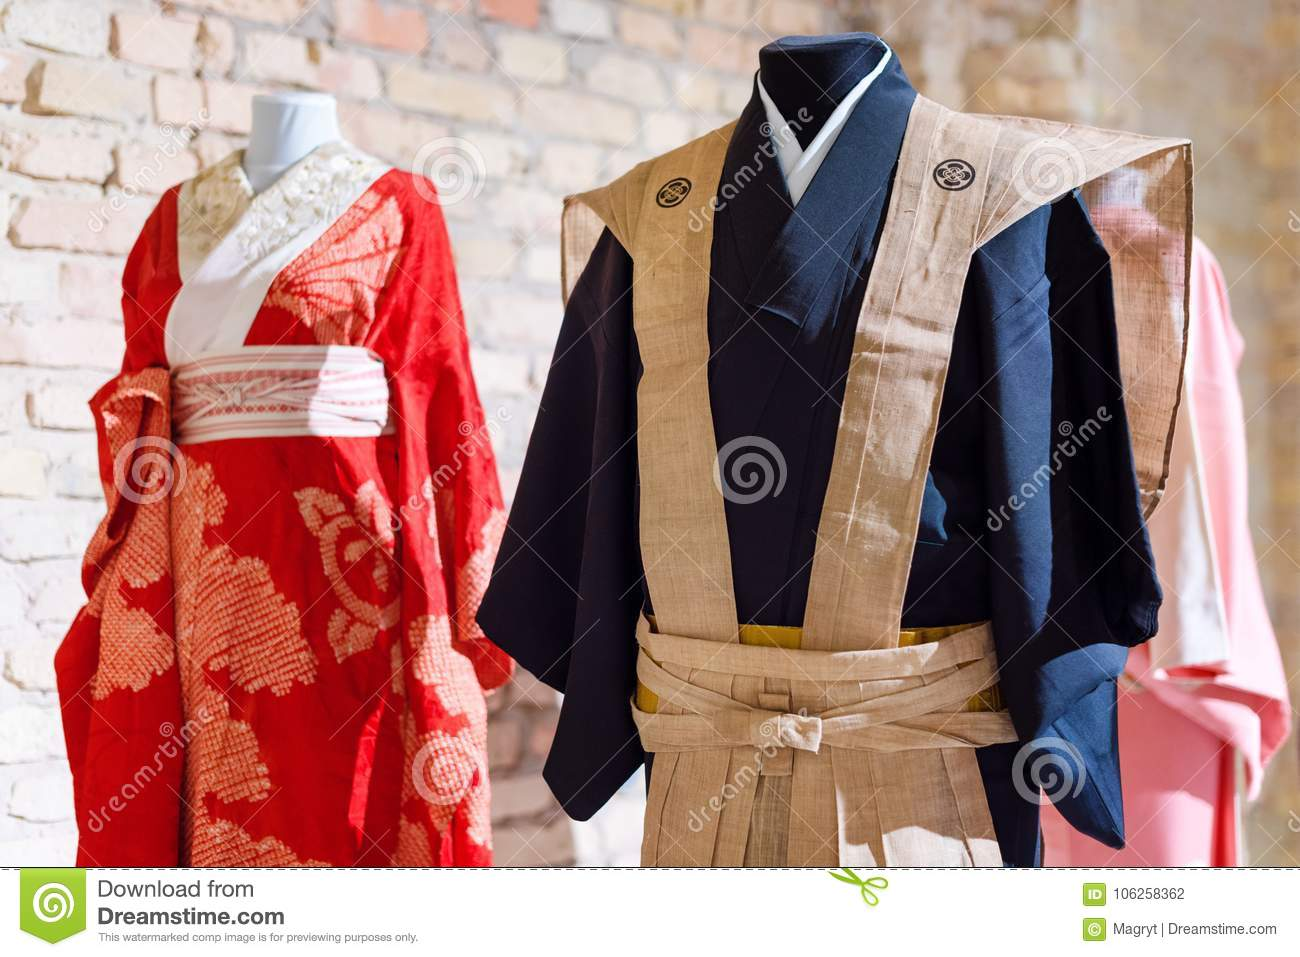 Traditional Japanese Samurai Dress Kimono Costumes For Man And Woman On Mannequins Stock Photo Image Of Japan Female 106258362